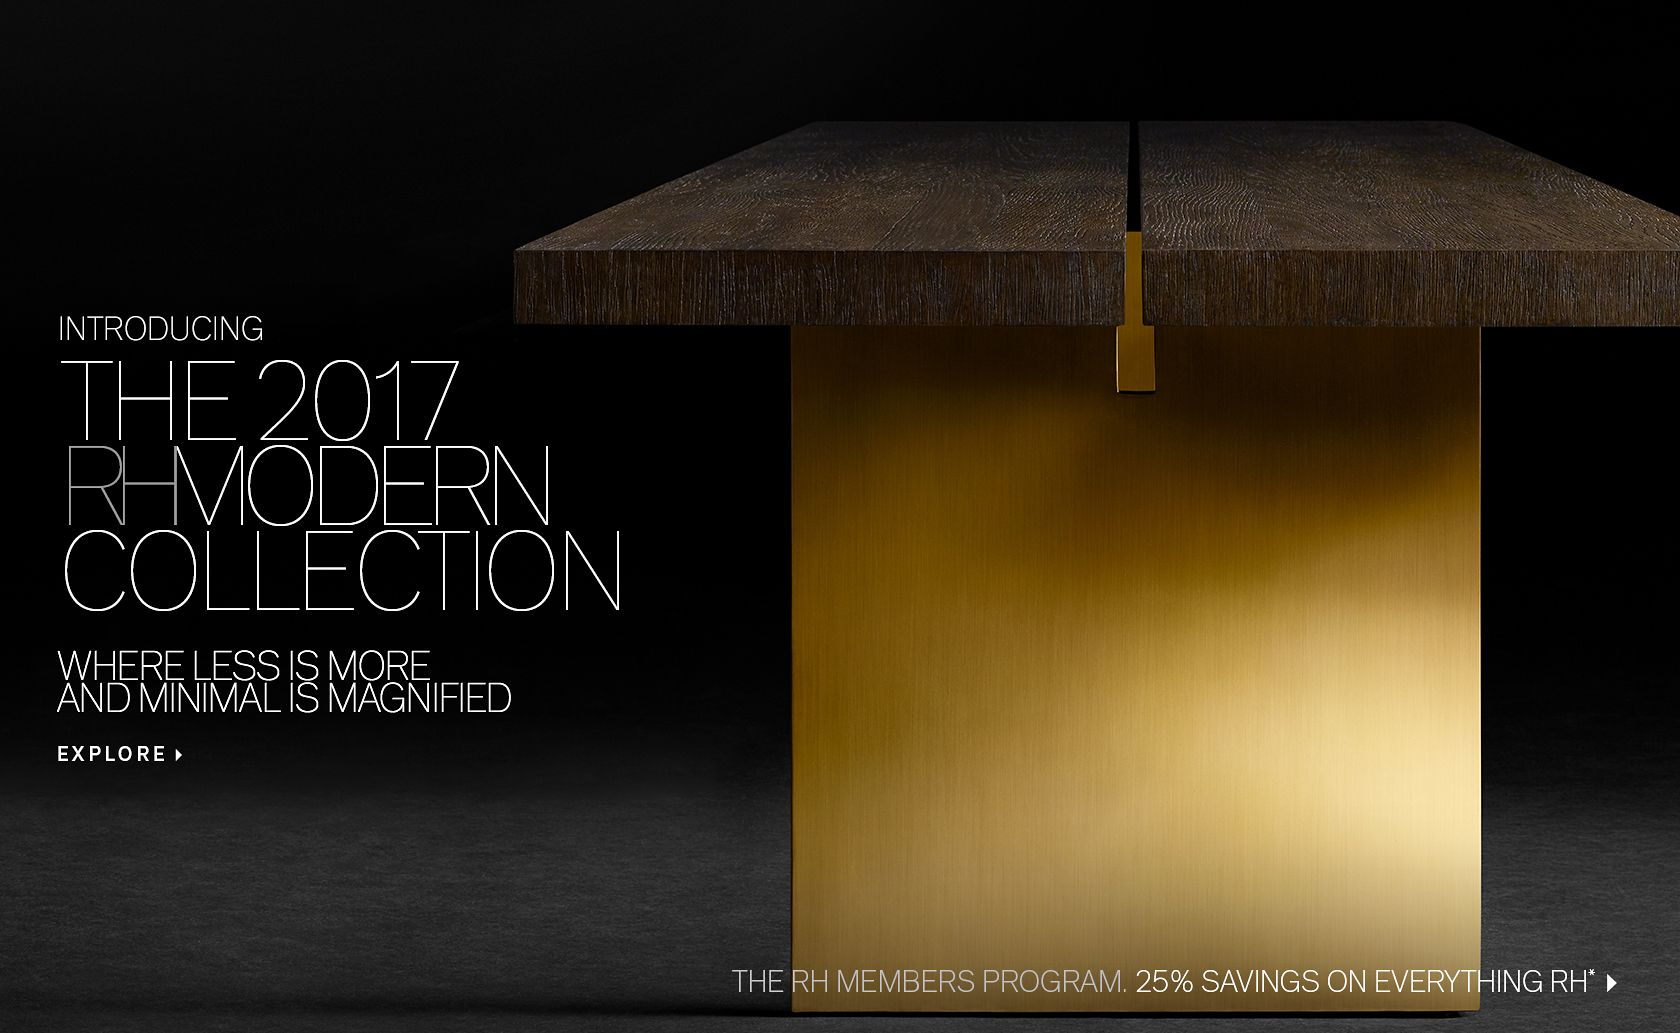 rh modern homepage - introducing the  rh modern collection where less is more and minimalis magnified